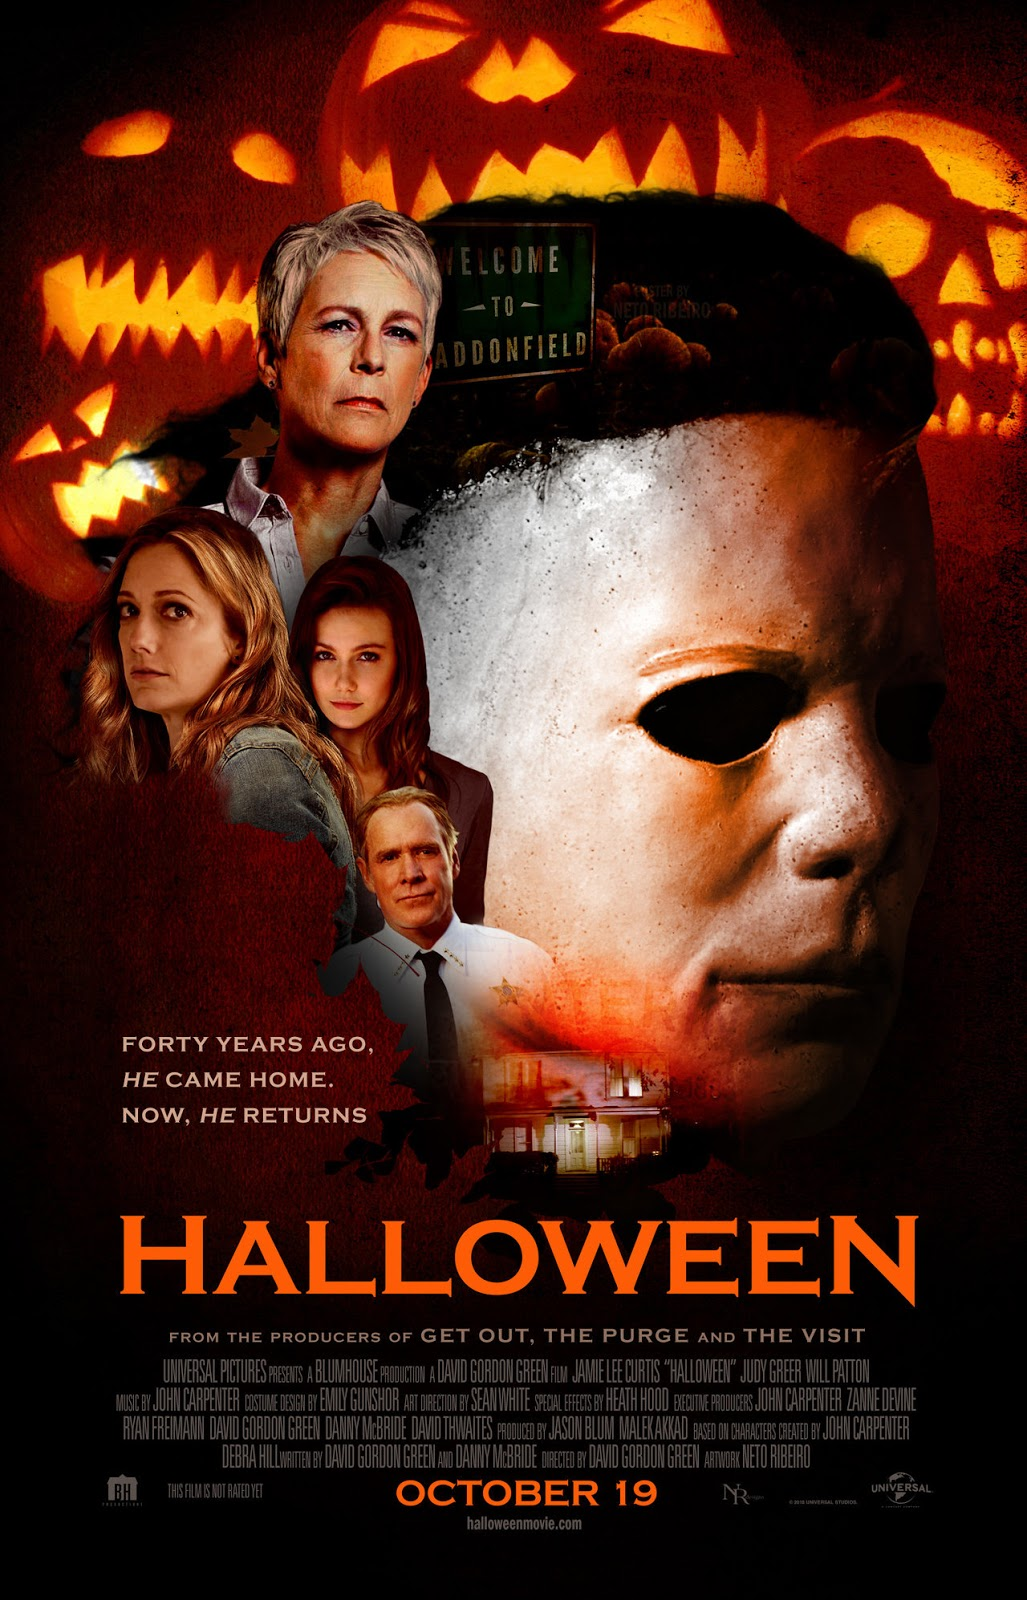 Halloween 2018 Fan Poster.The Horrors Of Halloween Halloween 2018 Fan Artwork Posters